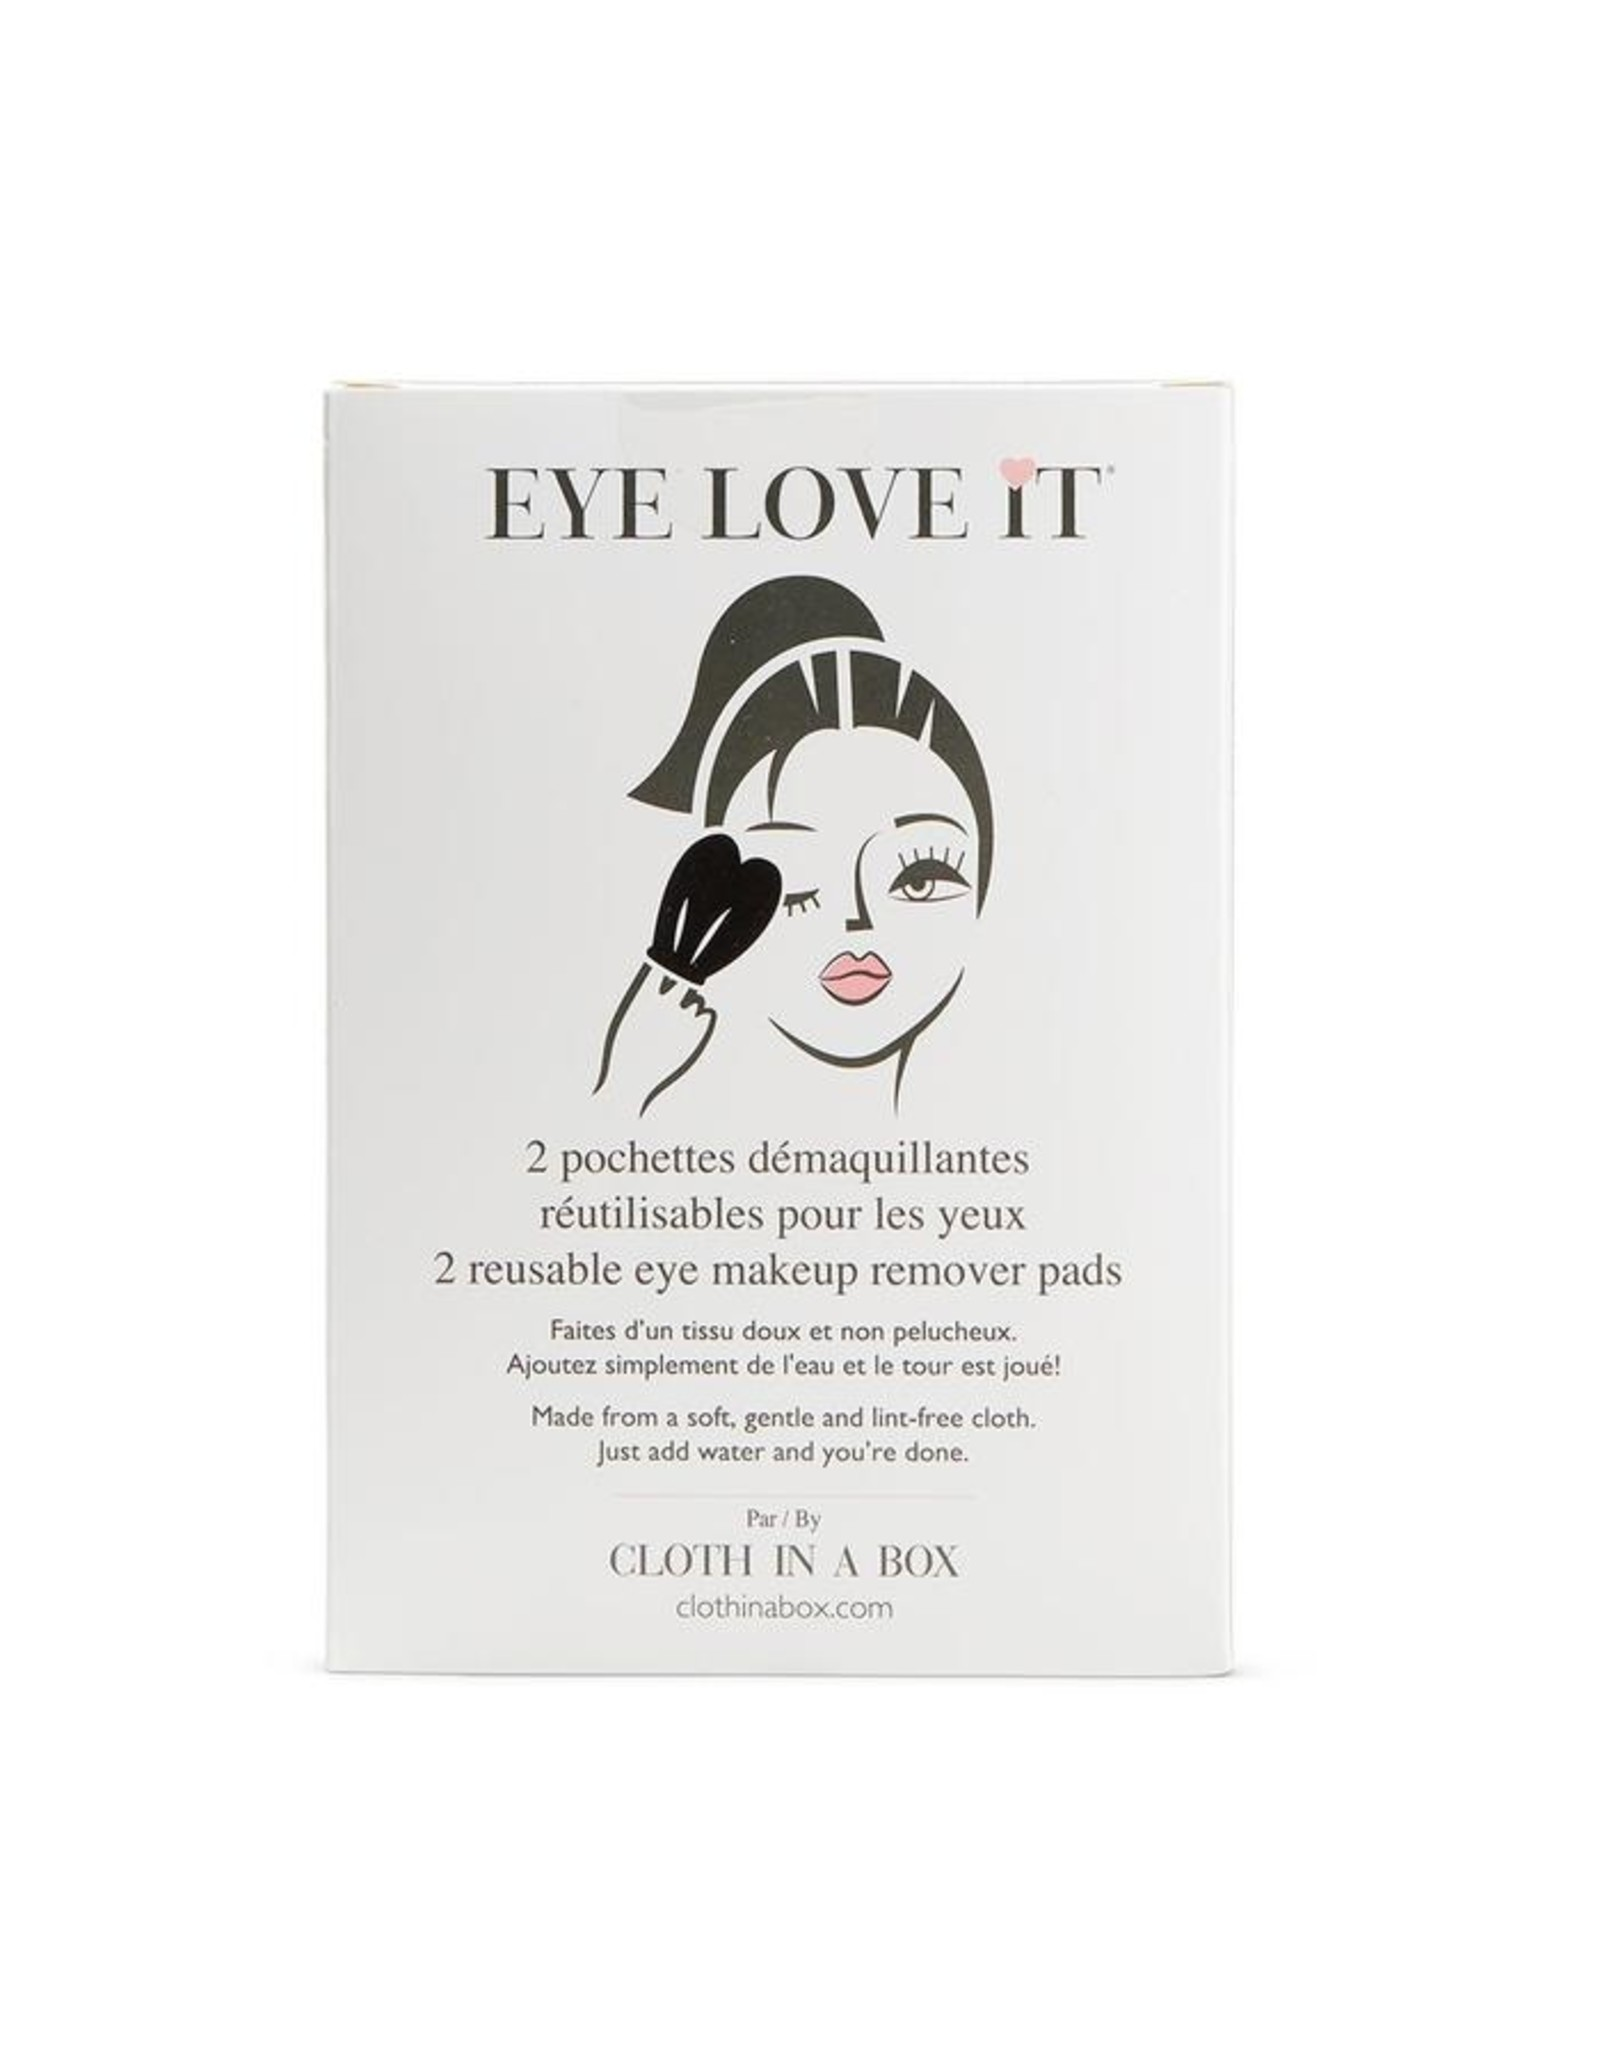 Eye Love It Eye Makeup Remover Pads, 2 pack